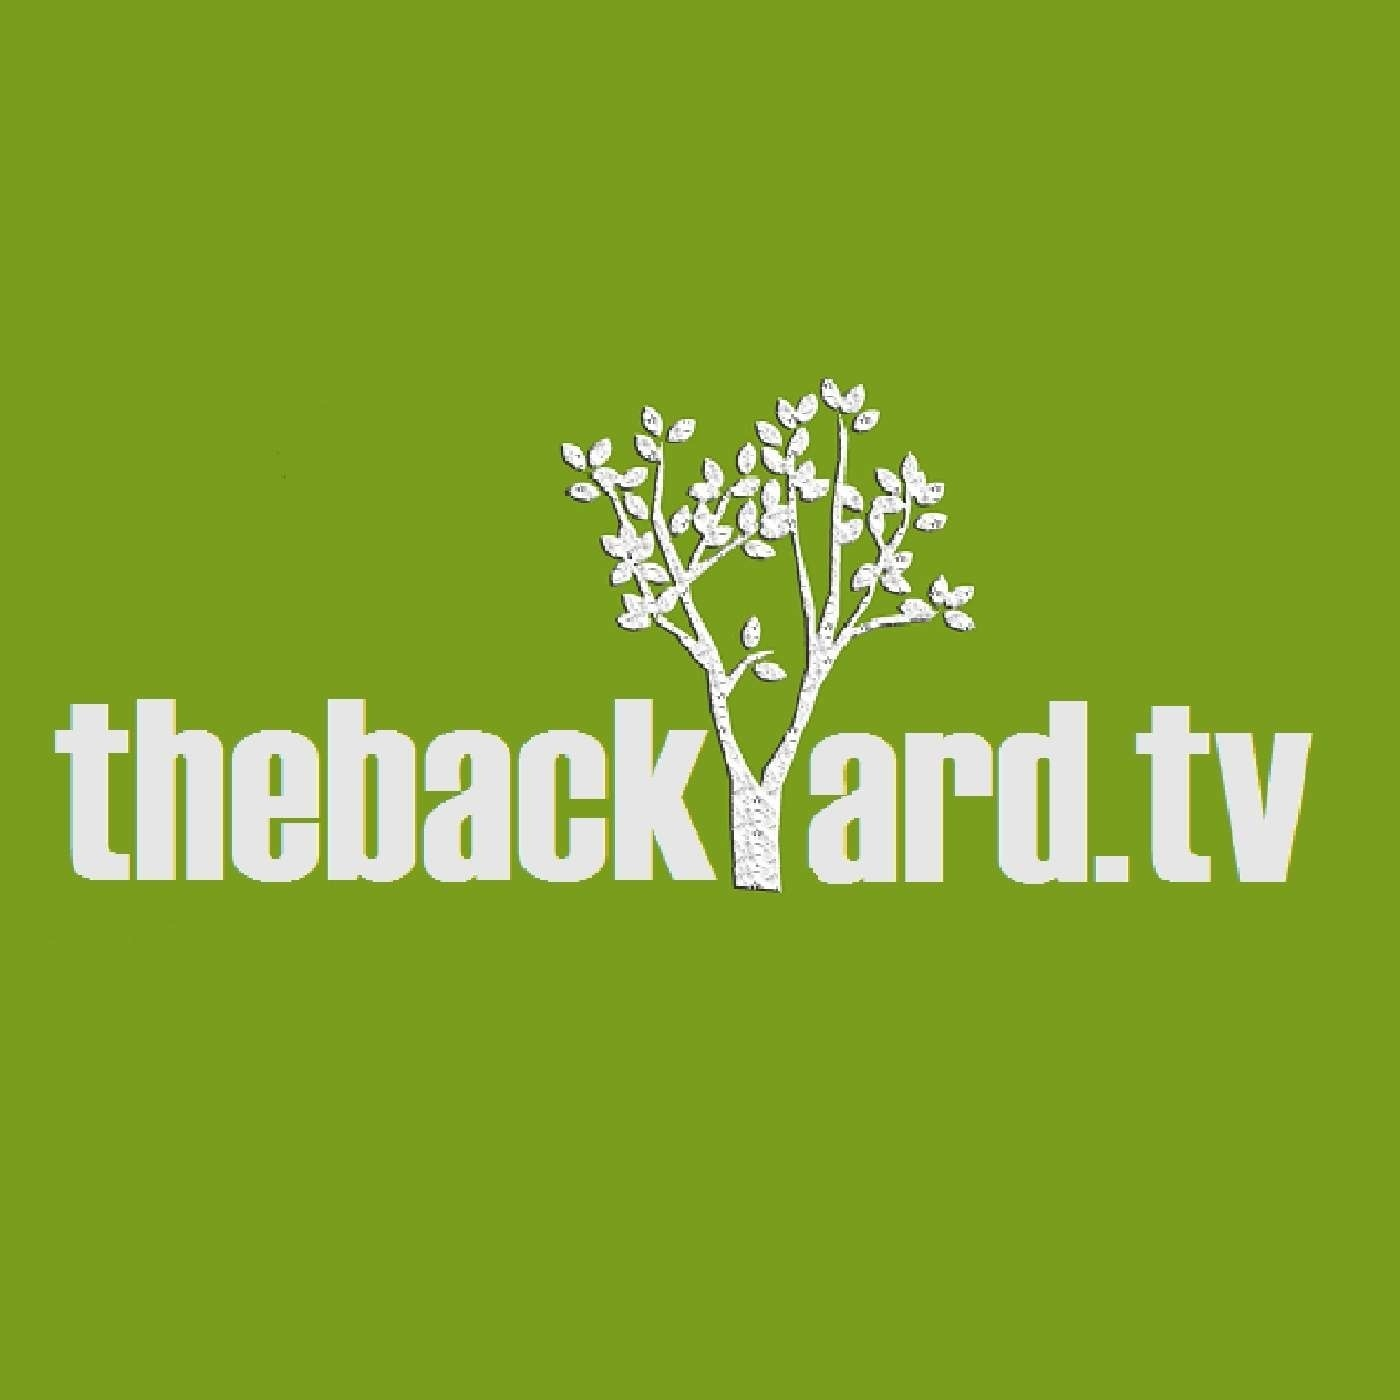 thebackyard.tv